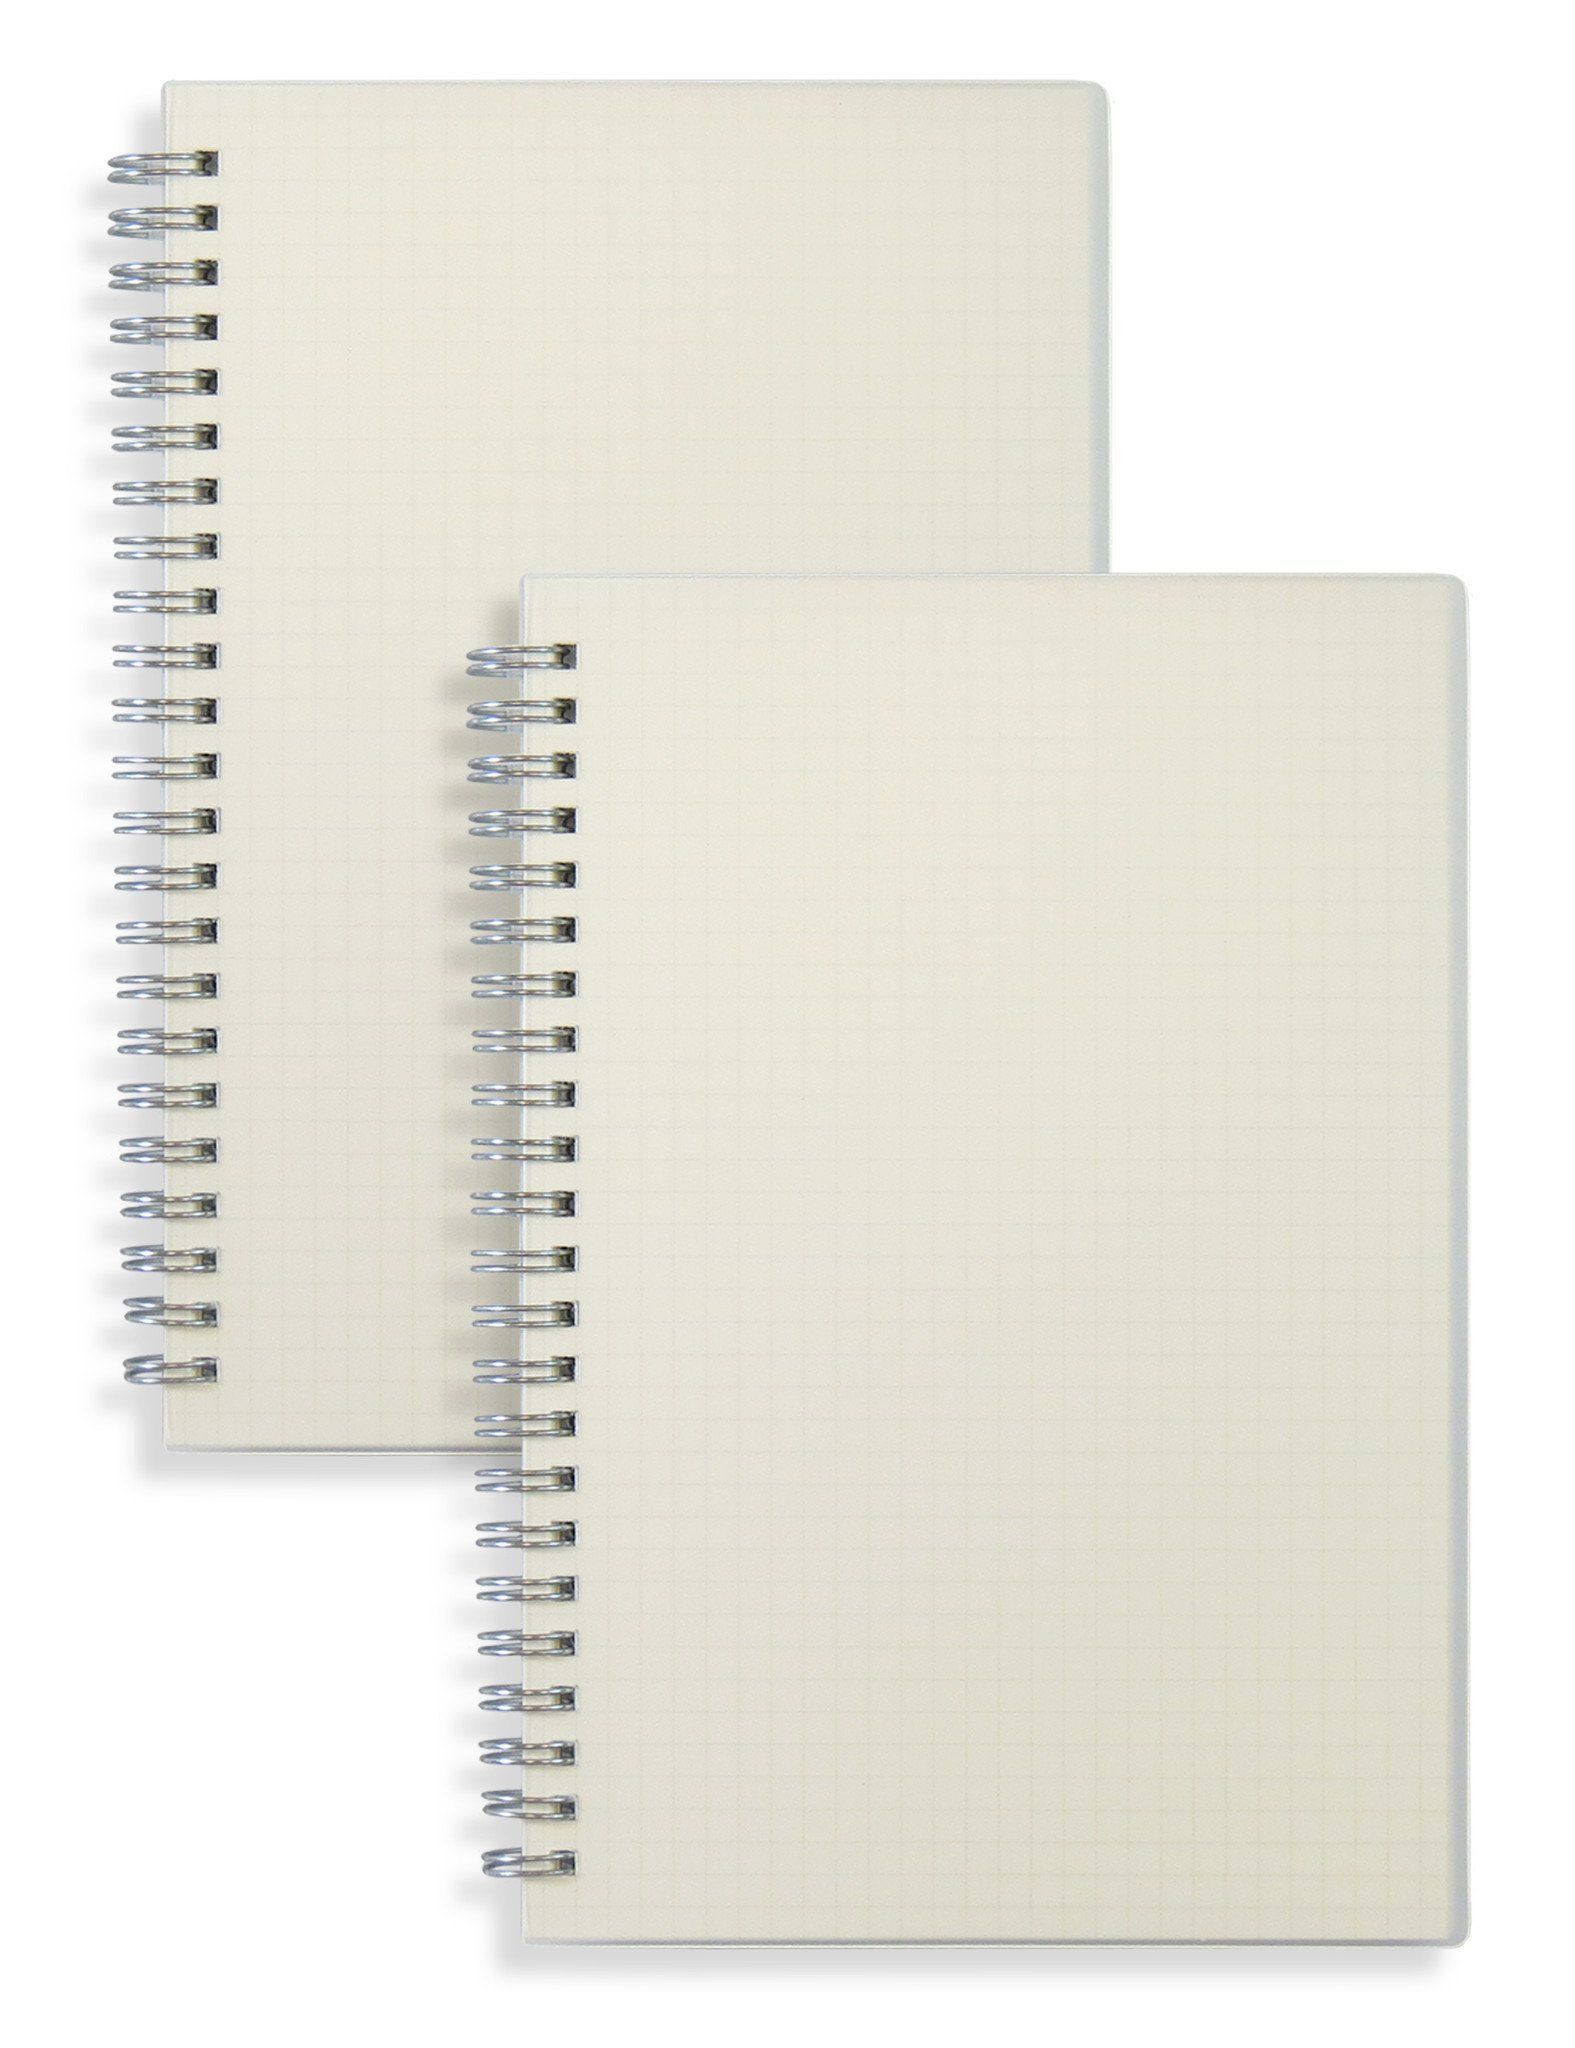 Transparent Hardcover A5 Size Spiral Notebook(Square Grid) | Dot